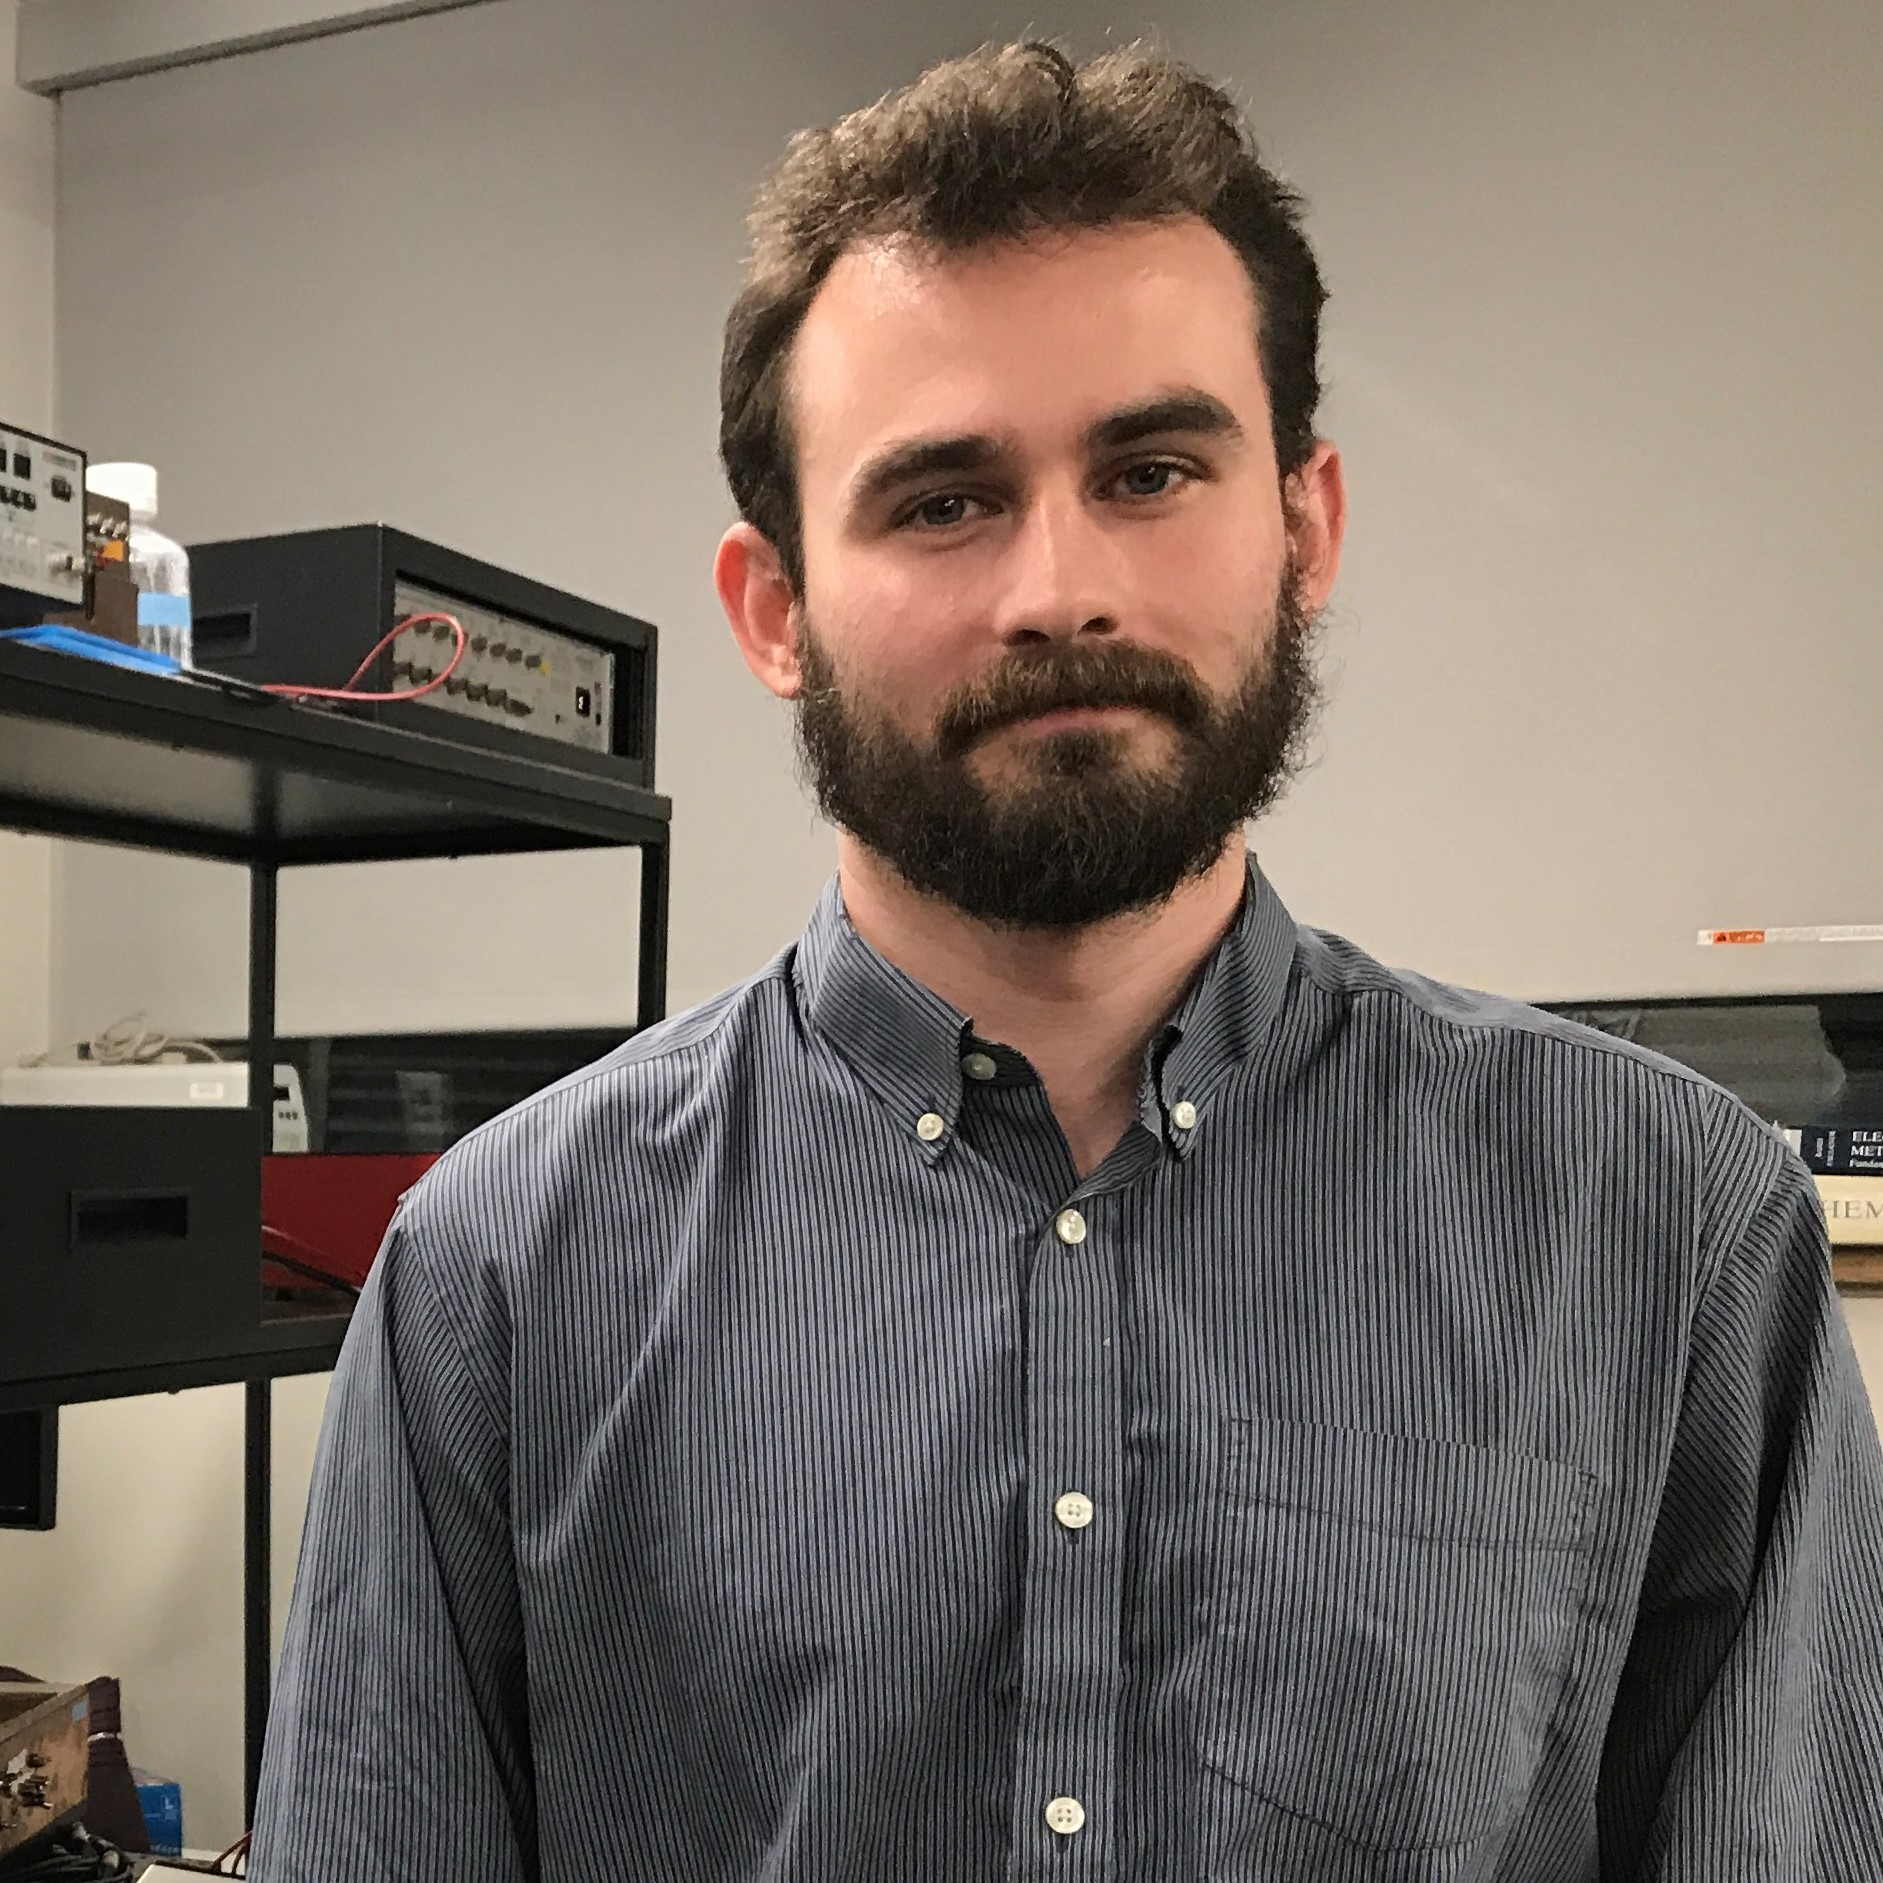 PhD student Kyle Briggs standing in front of a black shelving unit upon which laboratory material can be found